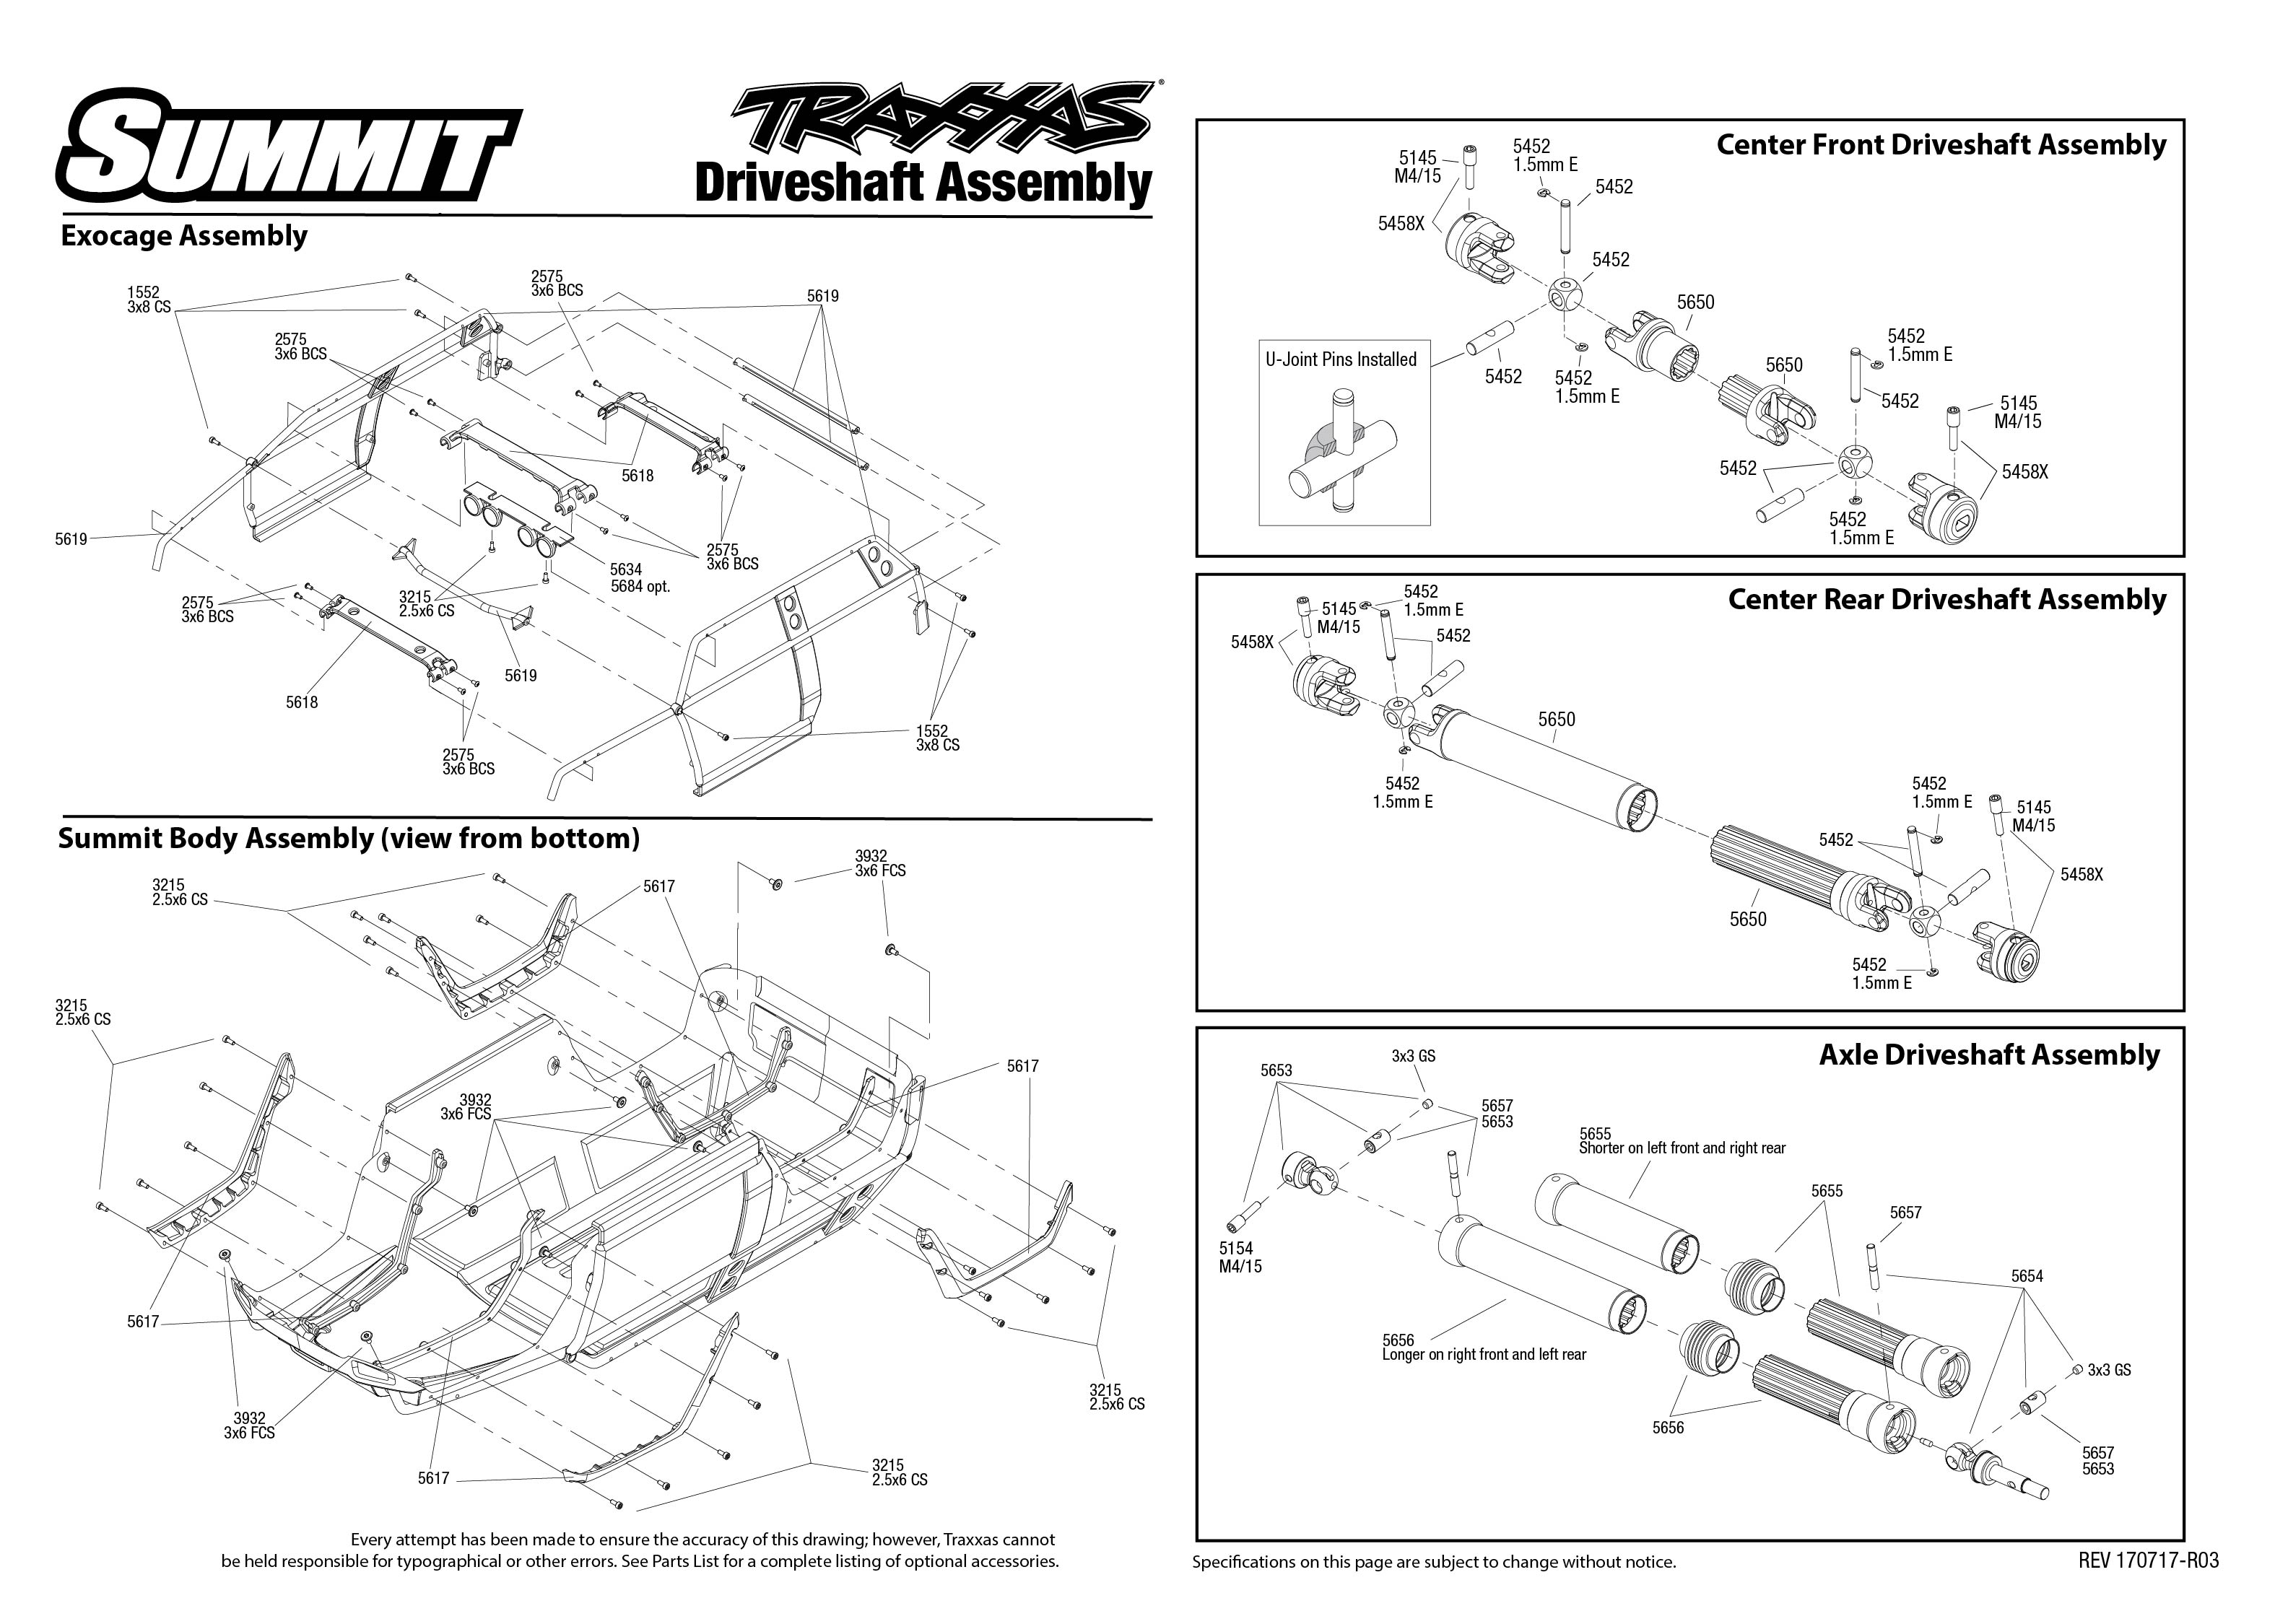 Summit 1 Driveshaft Assembly Exploded View